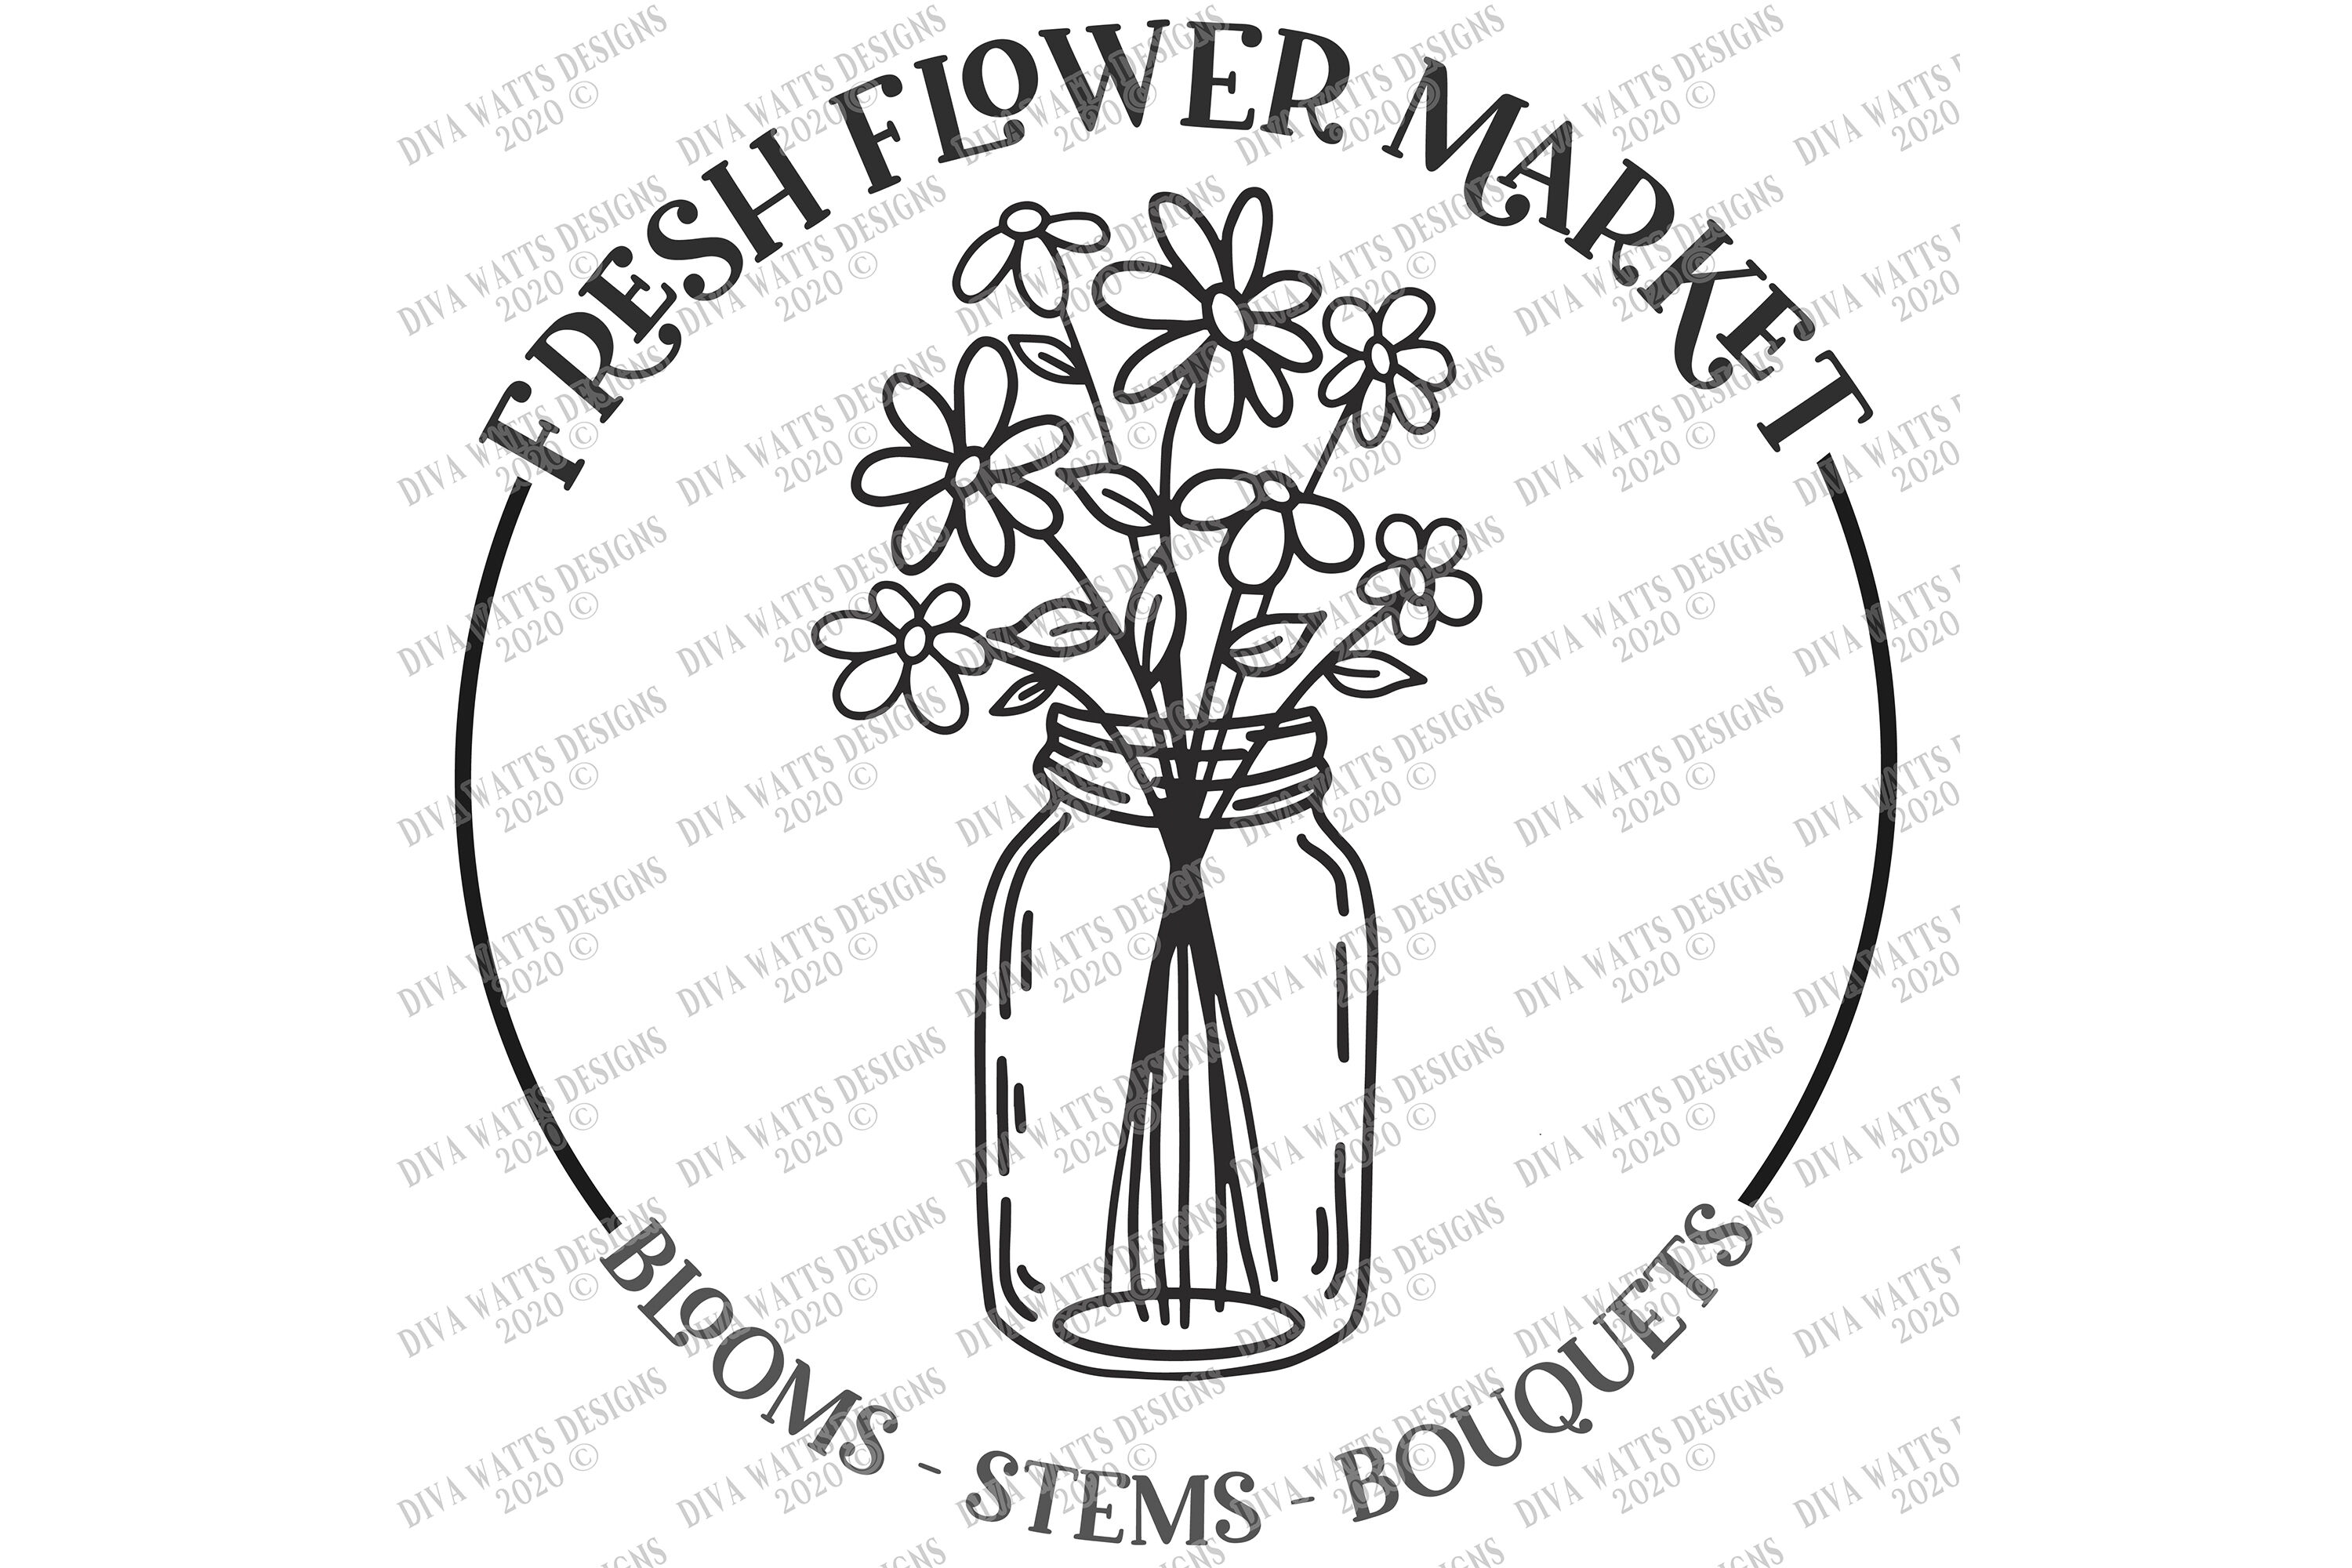 Fresh Flower Market Blooms Stems Bouquets Round Sign Cut File By